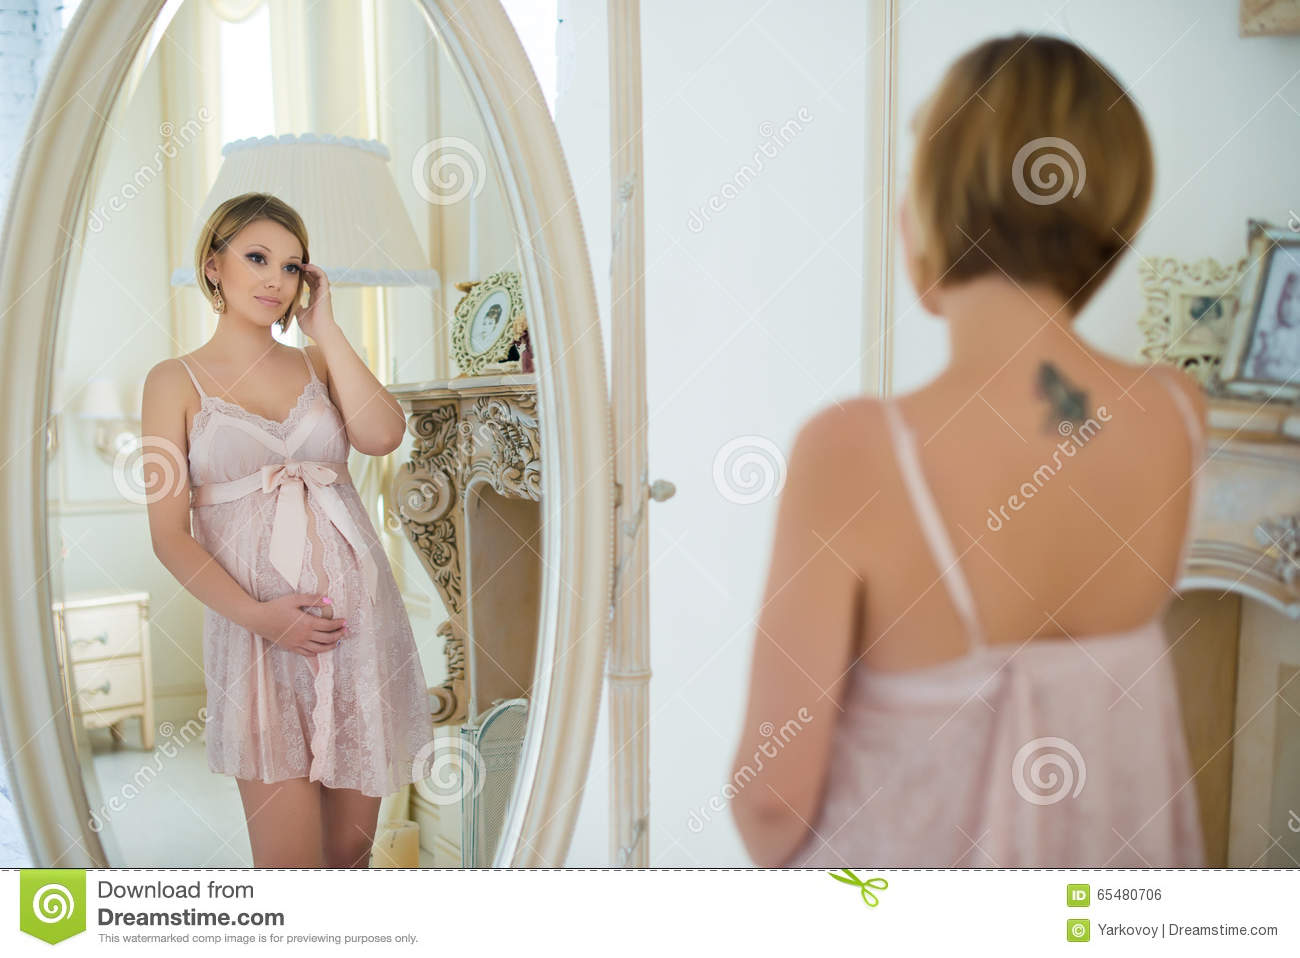 Beautiful Slim Pregnant Girl With A Tattoo On Shoulder Blade Looking